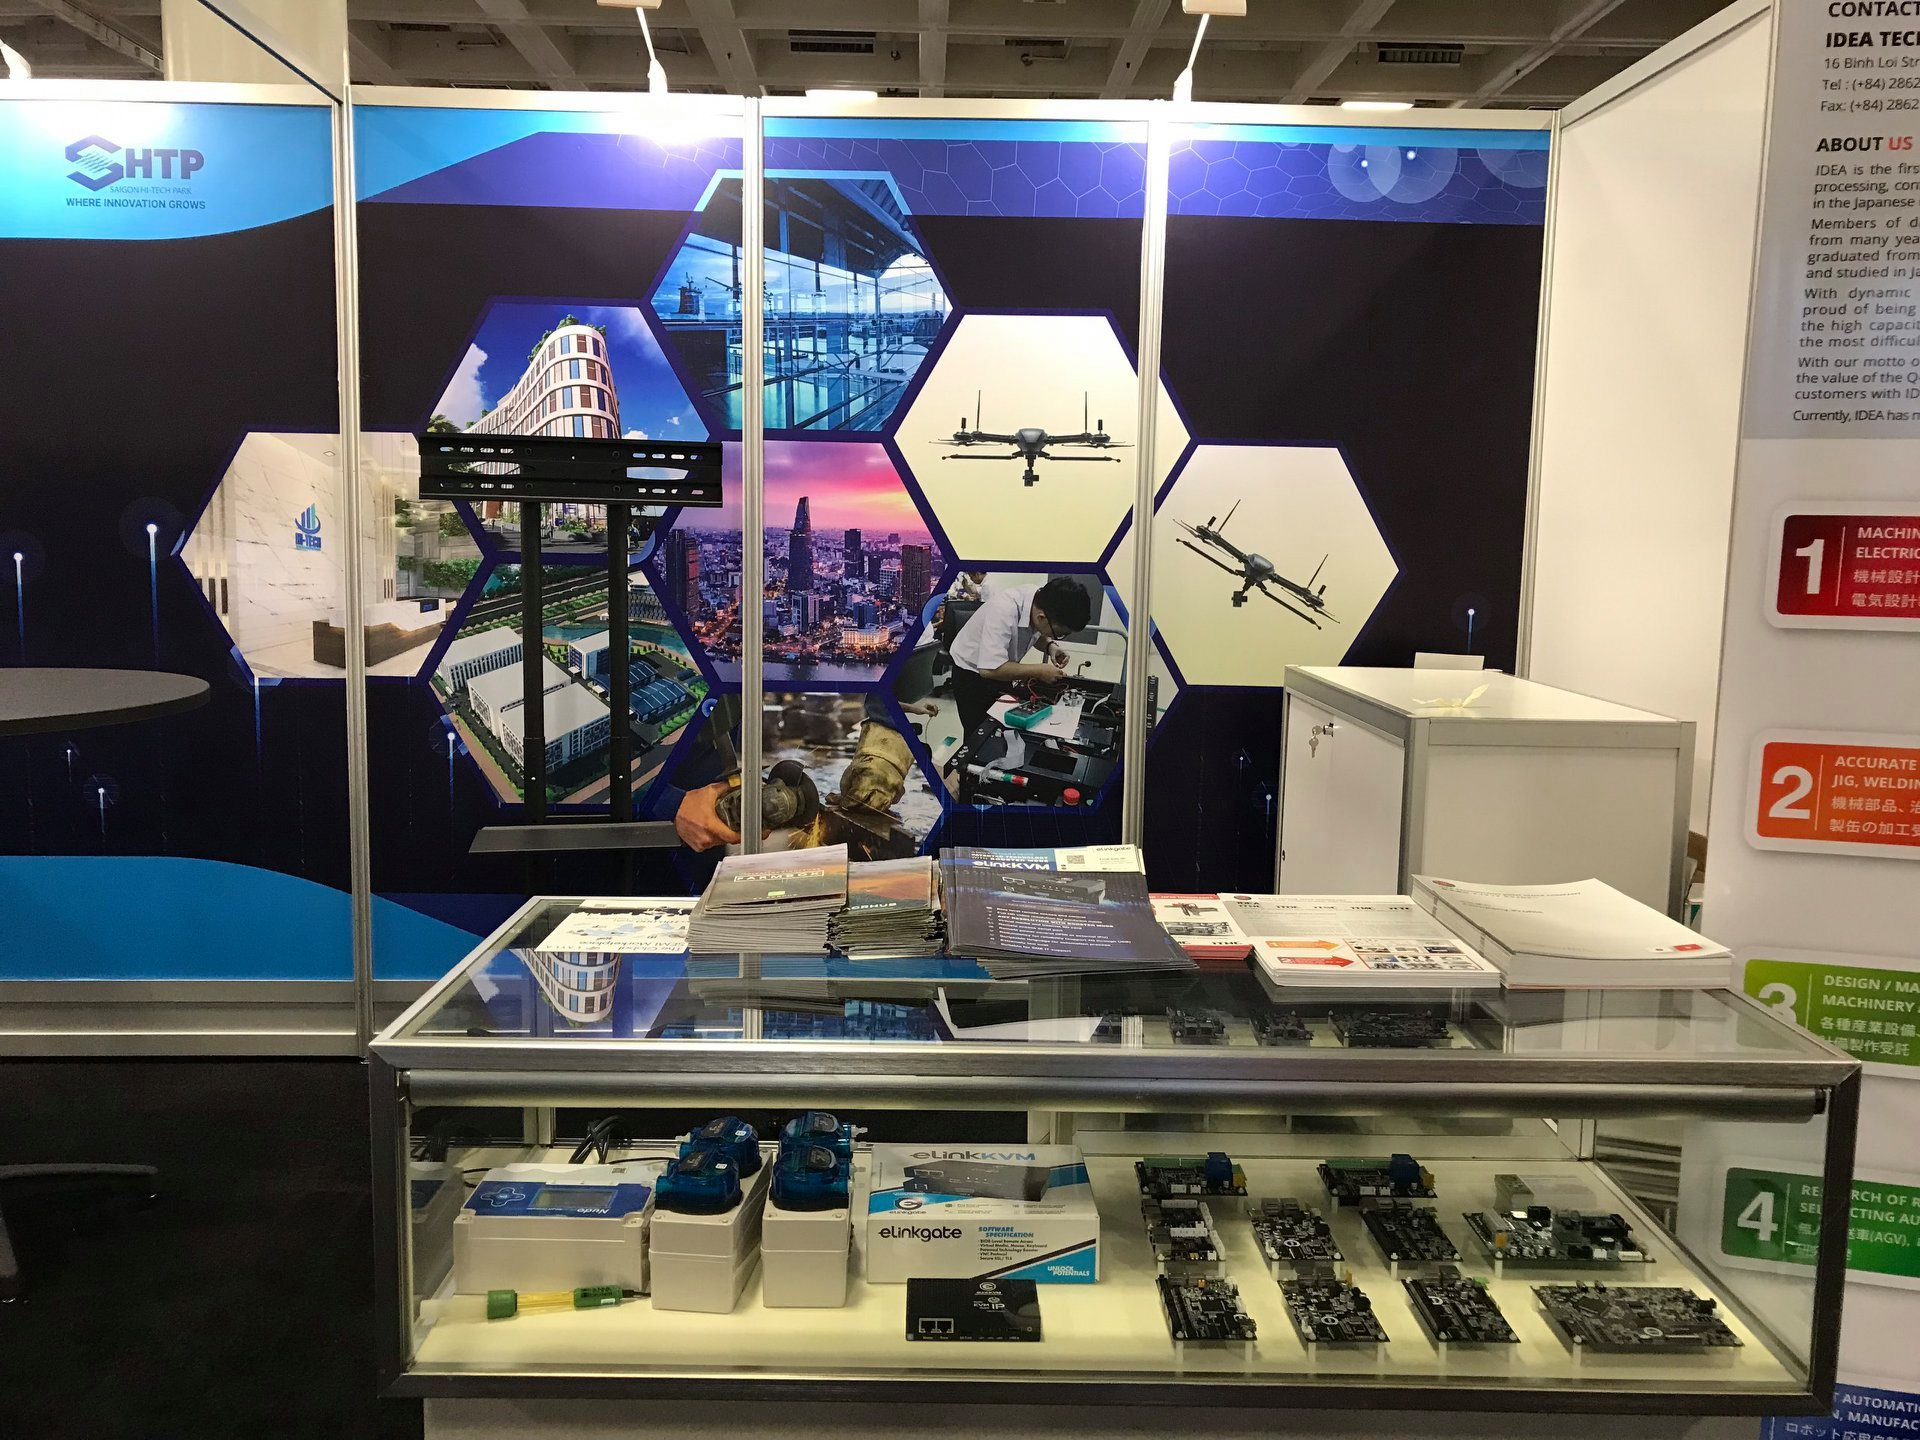 ElinkKVM products have been presented at the Semicon West 2019 exhibition stall in San Francisco city (California, USA).